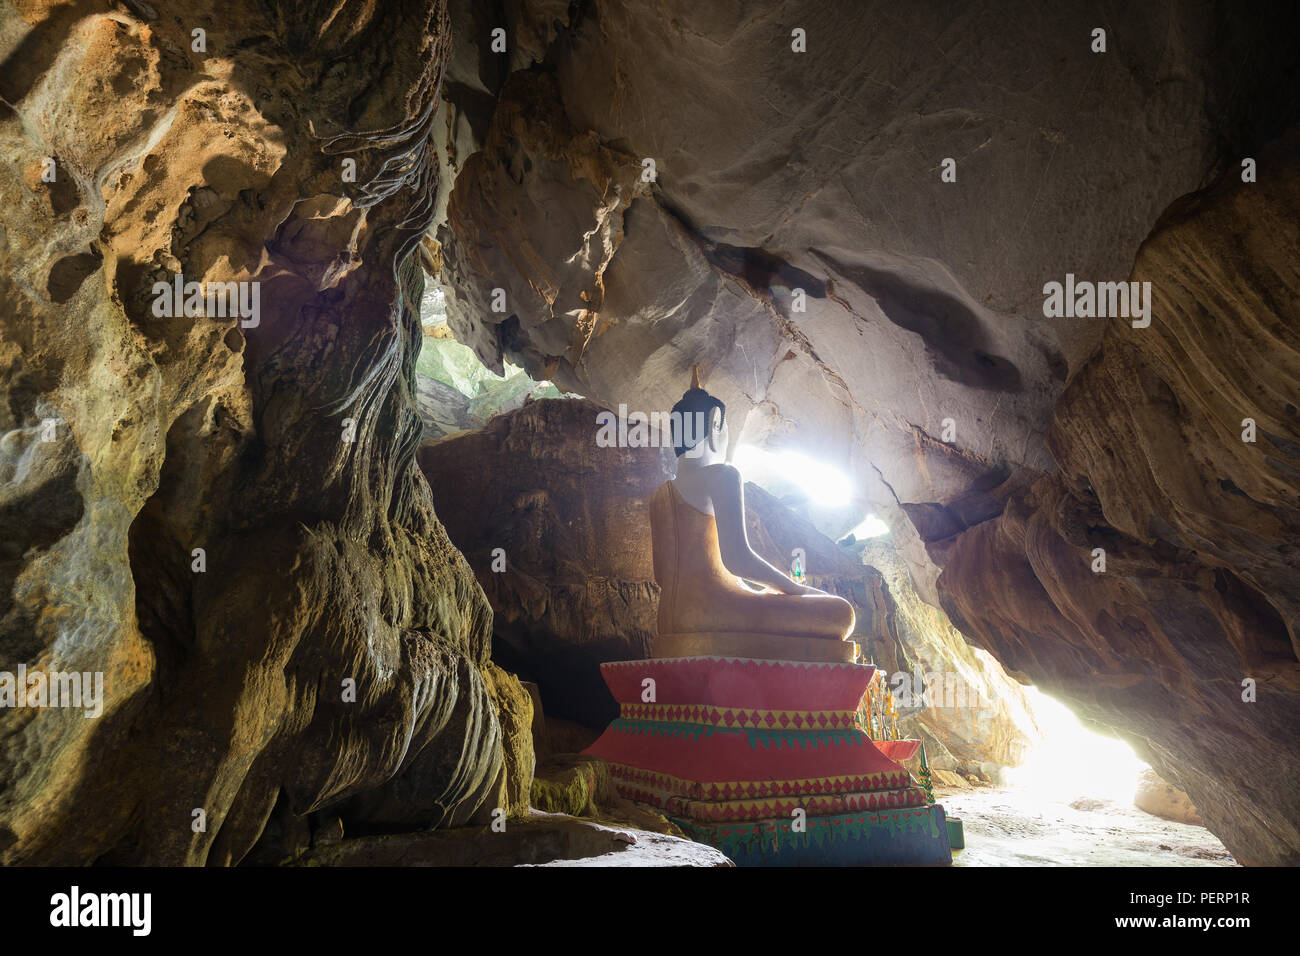 Statue of a sitting Buddha inside the Tham Hoi Cave near Vang Vieng, Vientiane Province, Laos. - Stock Image